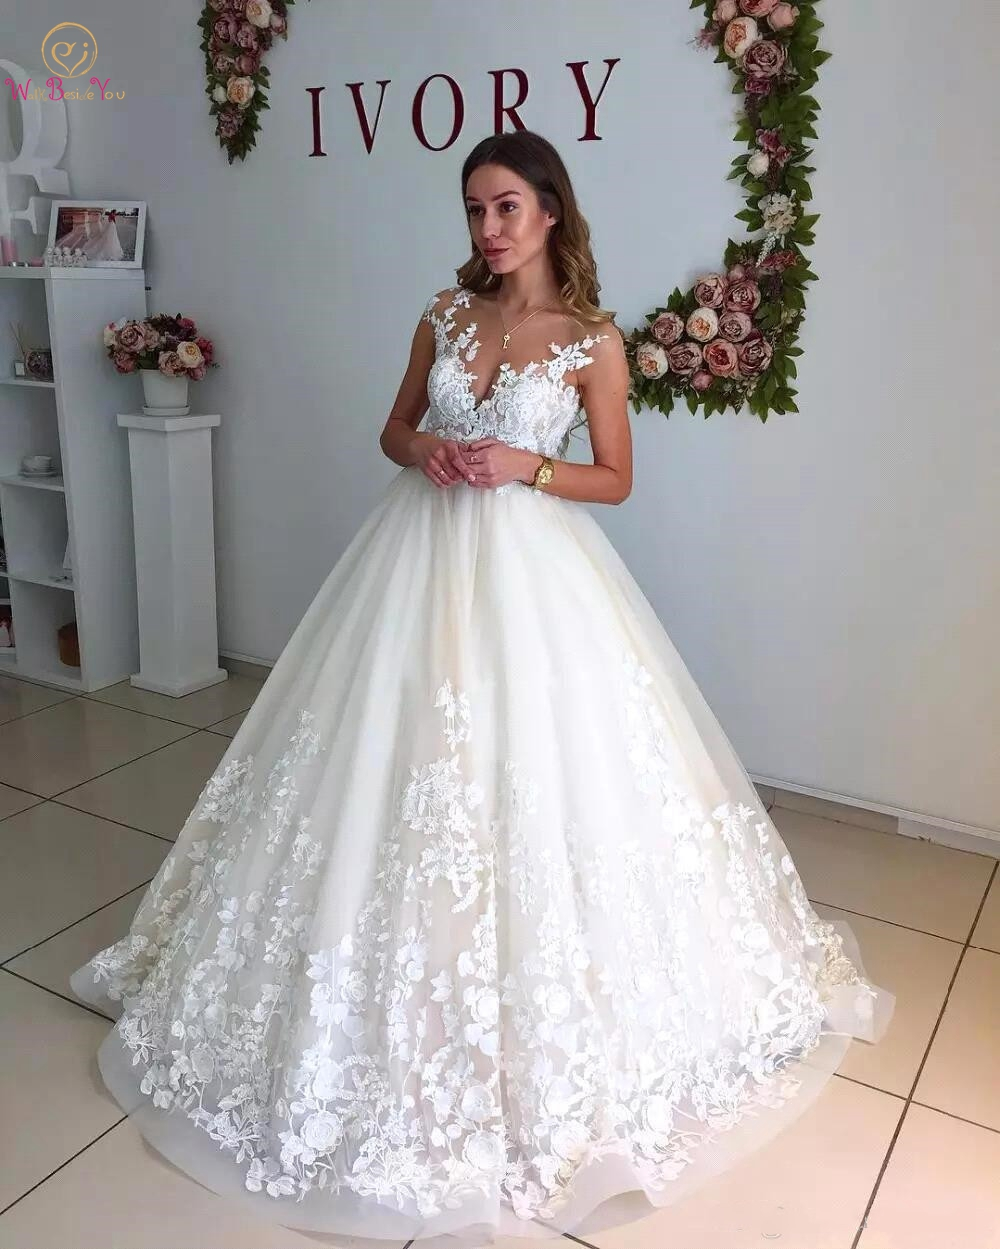 2019 Pregnant Wedding Dresses Elegant Lace Sheer Neck Capped Sleeve Maternity Backless Plus Size Customize Bridal